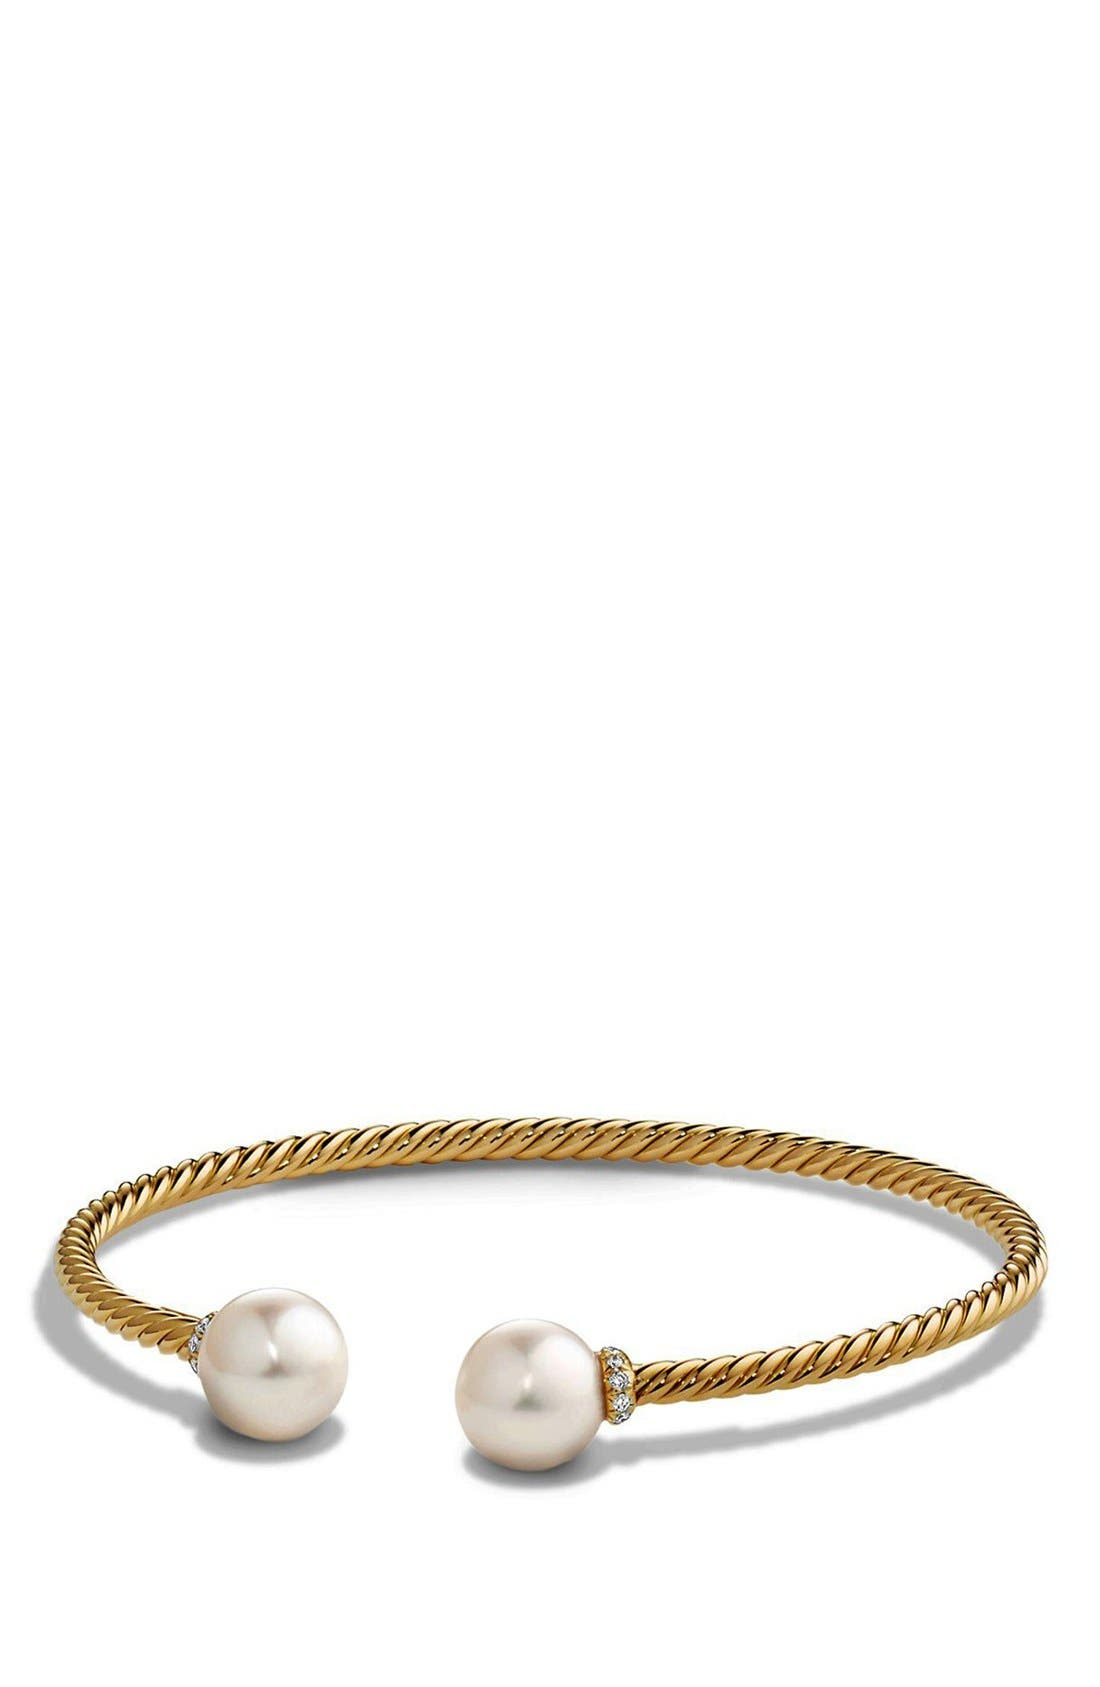 'Solari' Bead Bracelet with Diamonds and Pearls in 18K Gold,                             Main thumbnail 1, color,                             PEARL